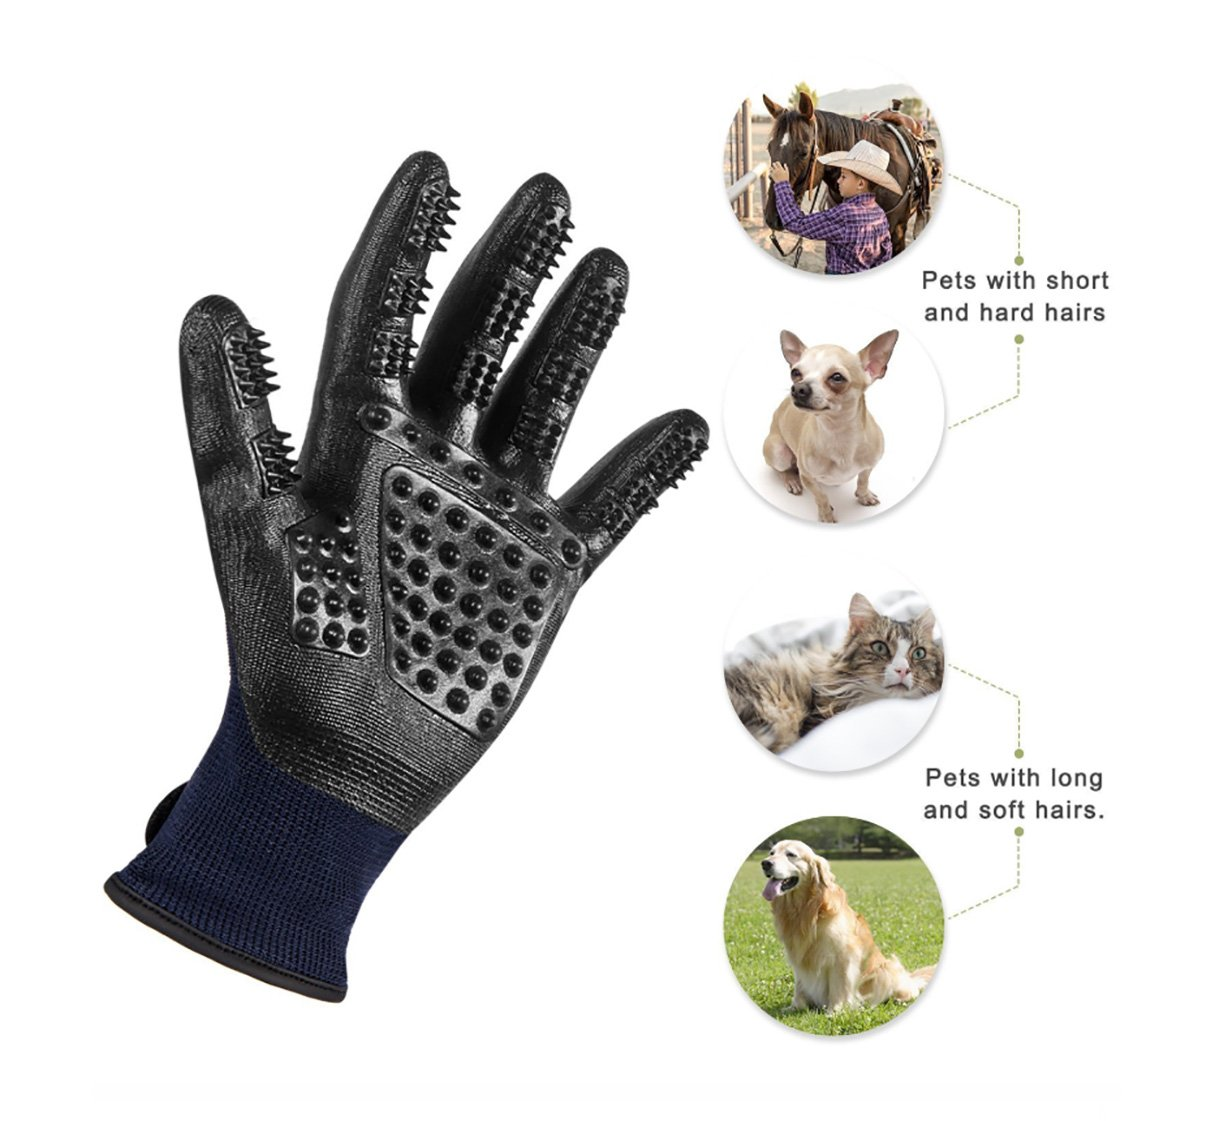 Trendcode Pet Deshedding Gloves - Efficient Pet Hair Remover, Grooming Mitt Brush Tool - Good Dogs Cats Horses Bathe Wash by Trendcode (Image #2)